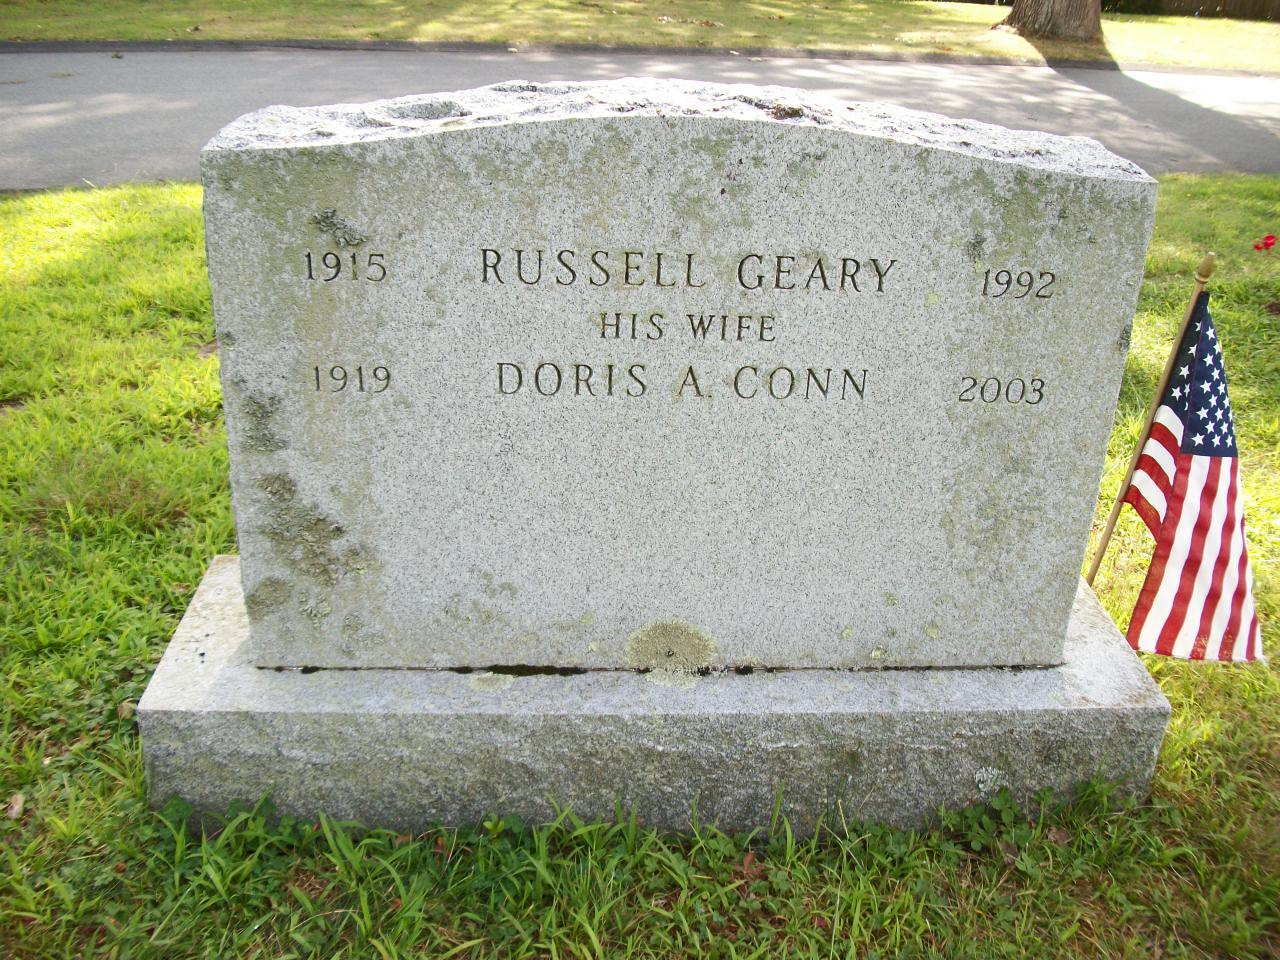 Russell Geary